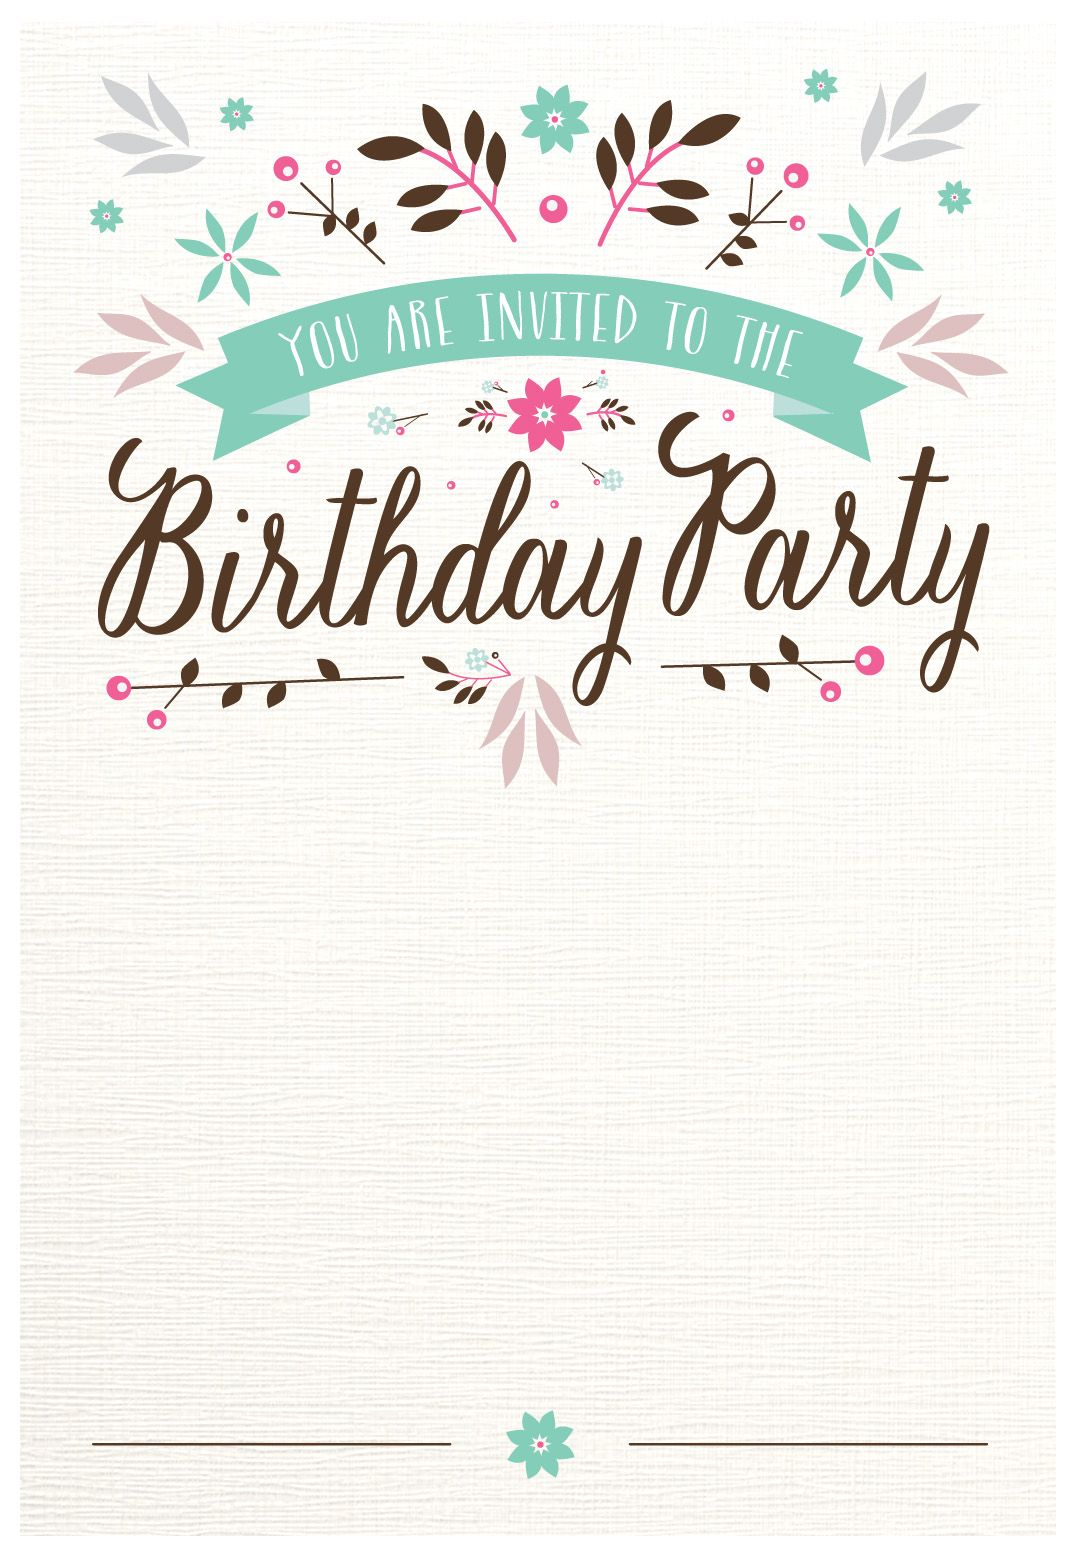 Free Printable Birthday Invitation Flat Floral Greetings I Birthday Invitation Card Template Floral Birthday Invitations Free Birthday Invitation Templates